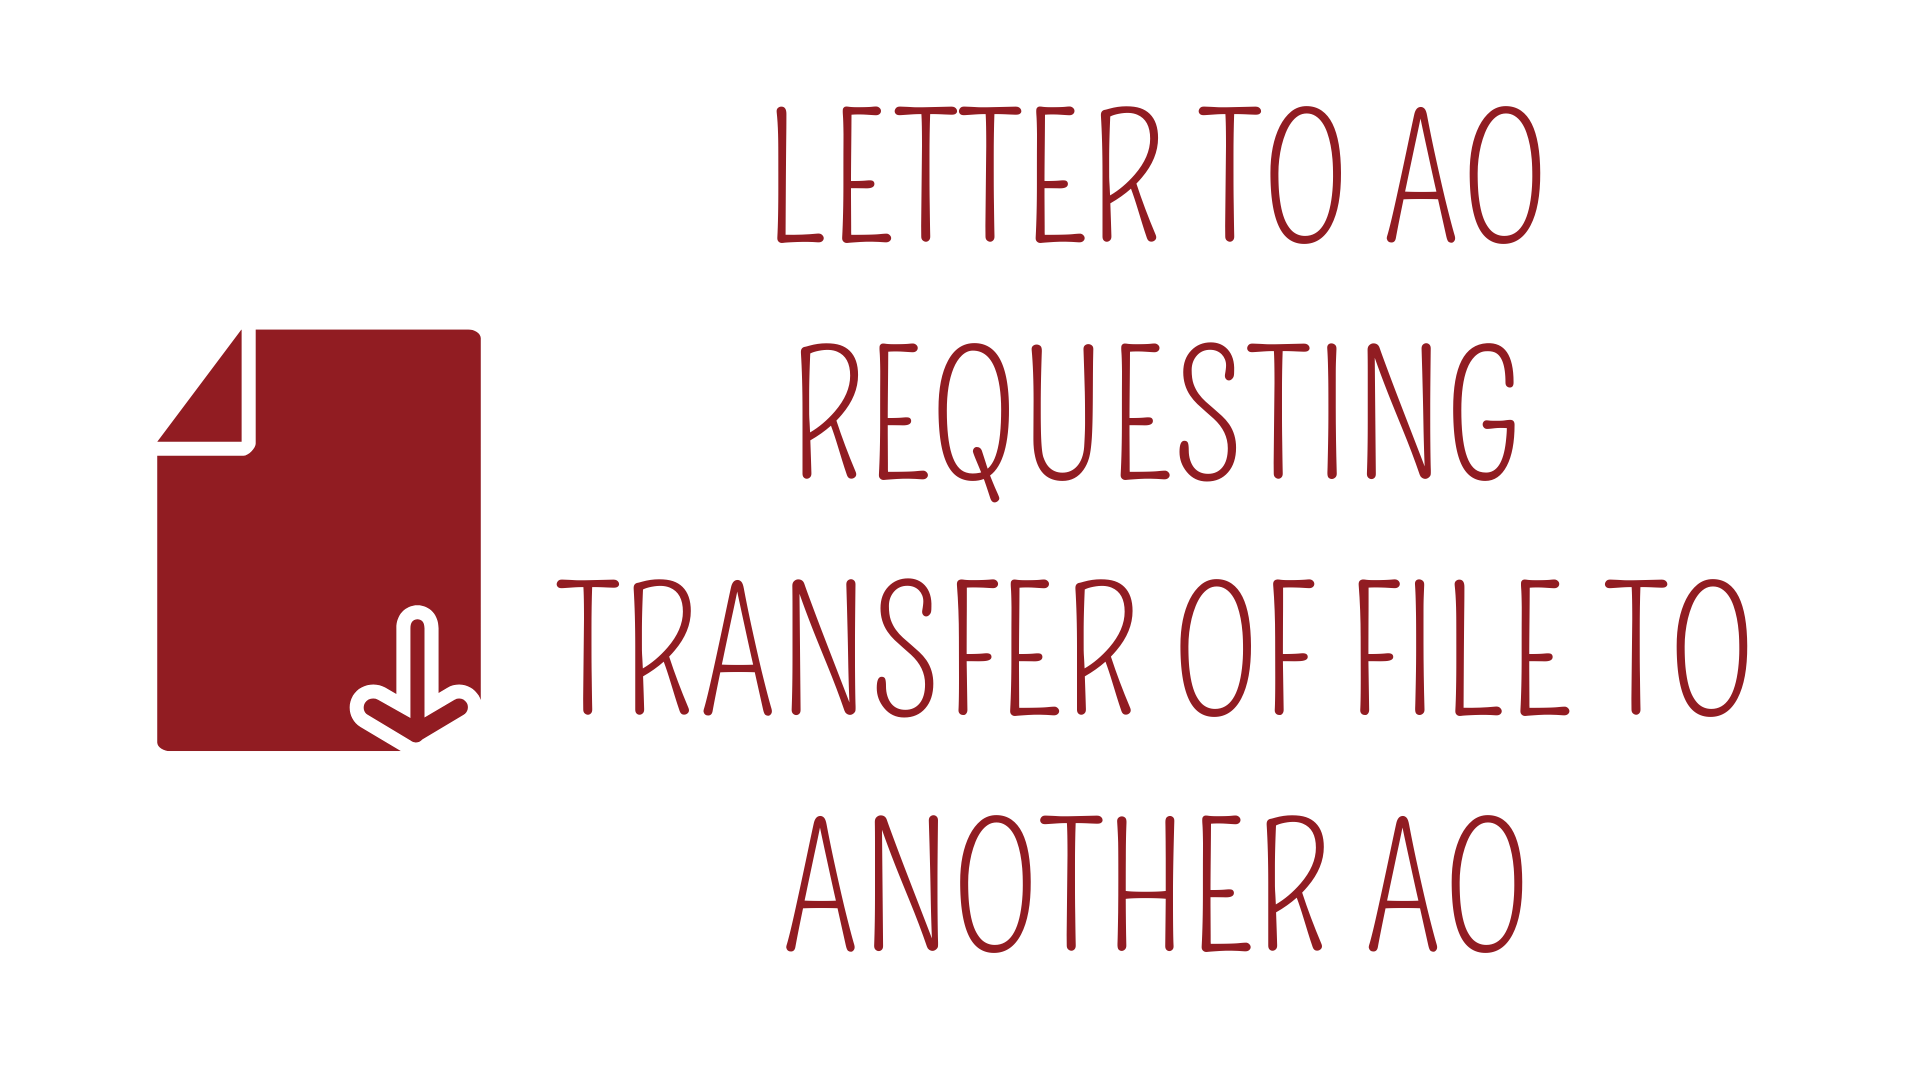 LETTER TO AO REQUESTING TRANSFER OF FILE TO ANOTHER AO